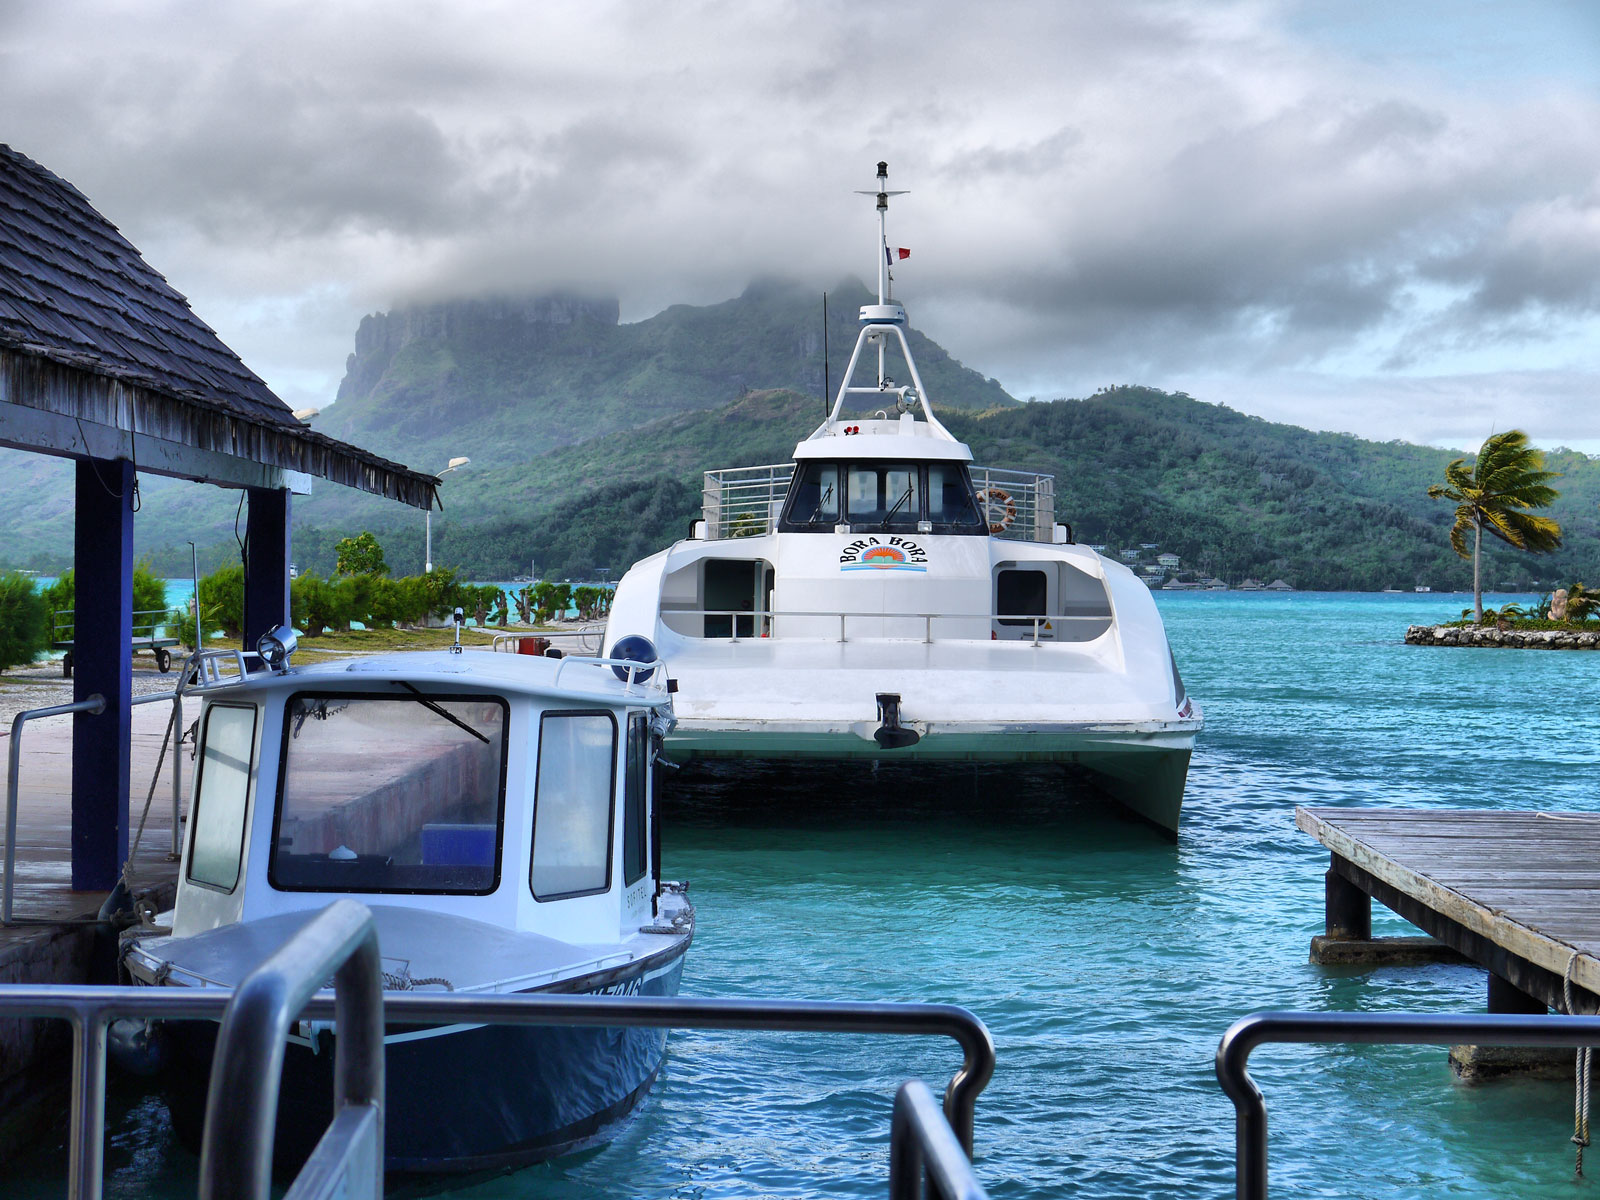 Water Taxi: Cruising From the Airport to the Hotel - Bora Bora, French Polynesia